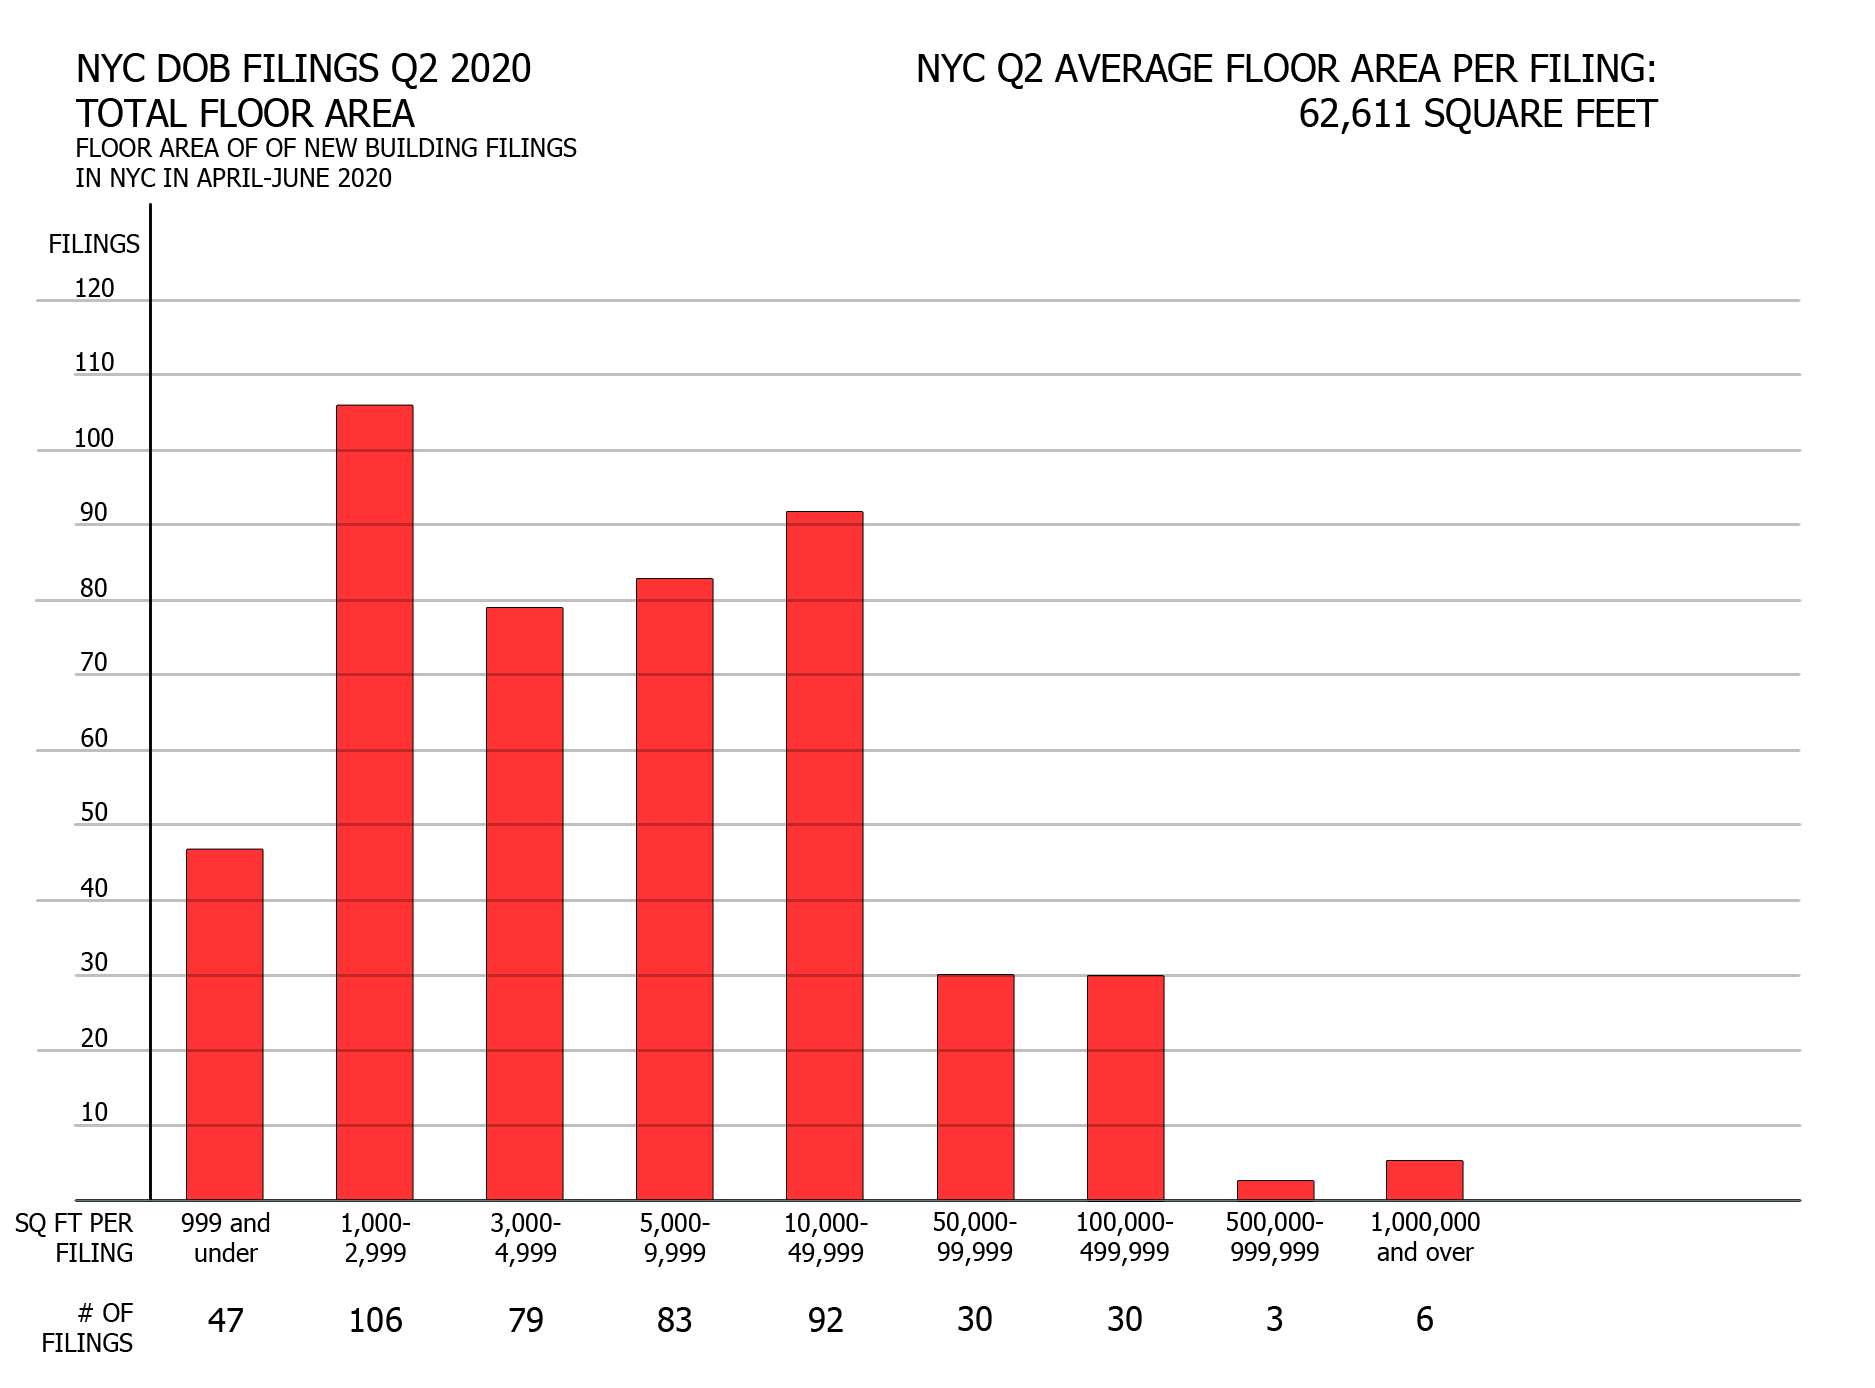 NYC Q2 2020 filings - Filings grouped by floor area. Image credit: Vitali Ogorodnikov